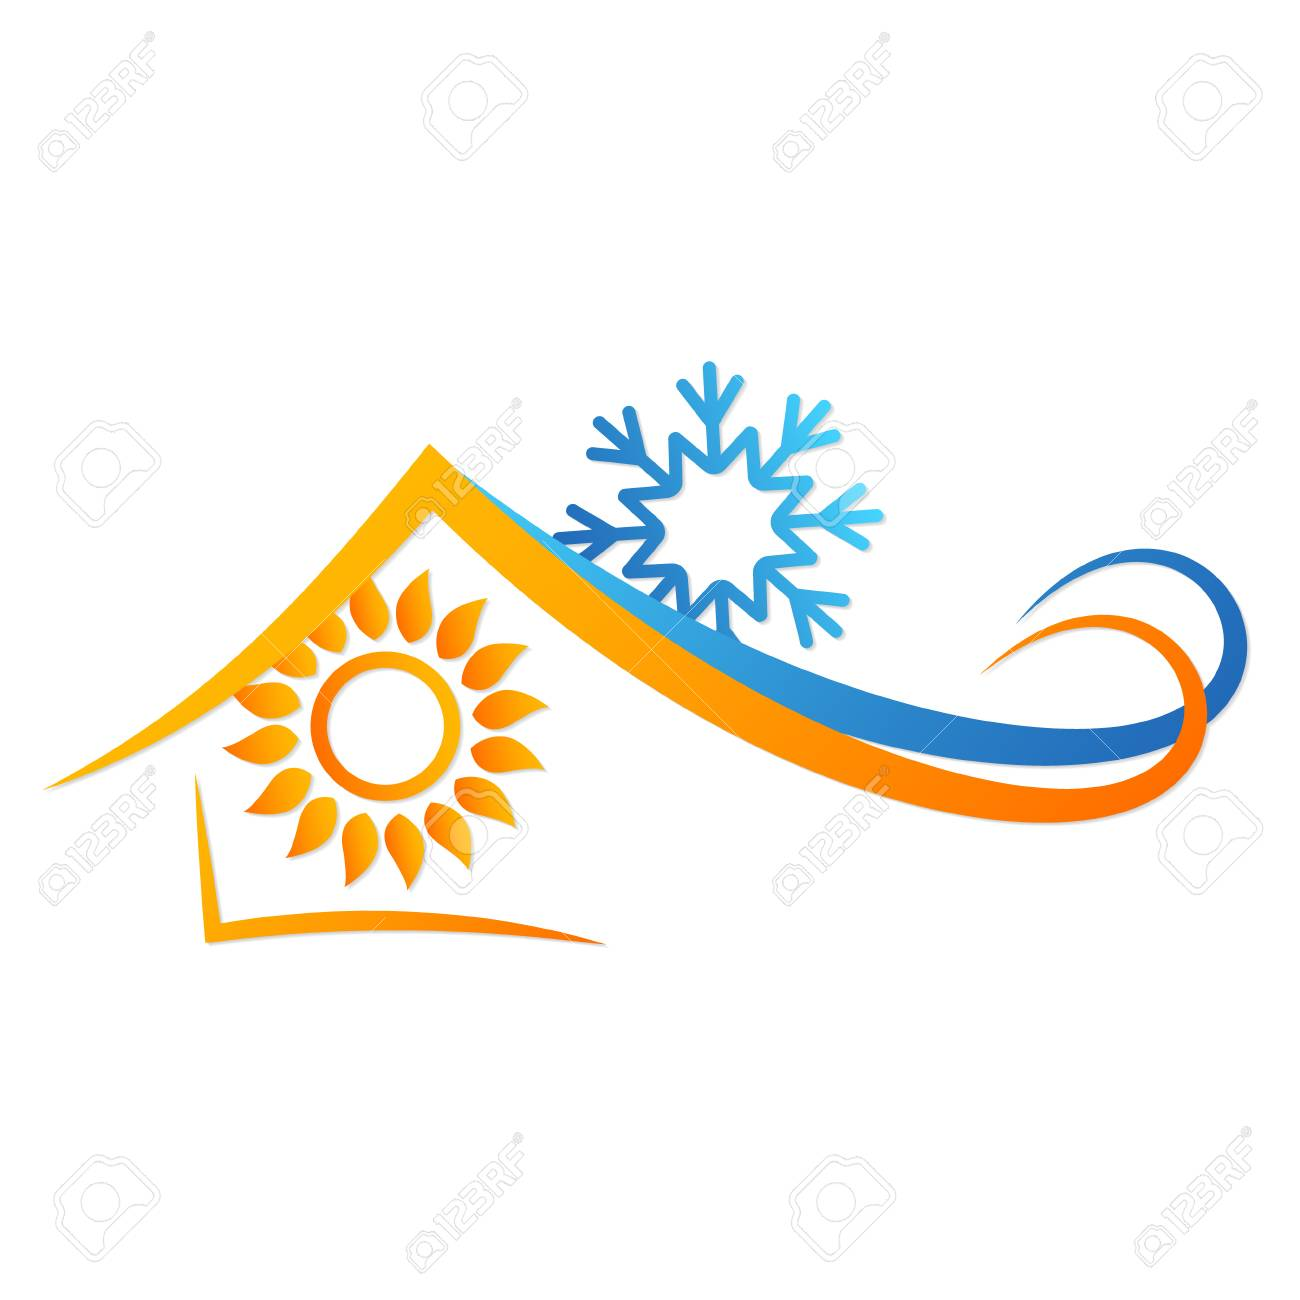 Sun and snowflake in house abstract symbol. - 98907533